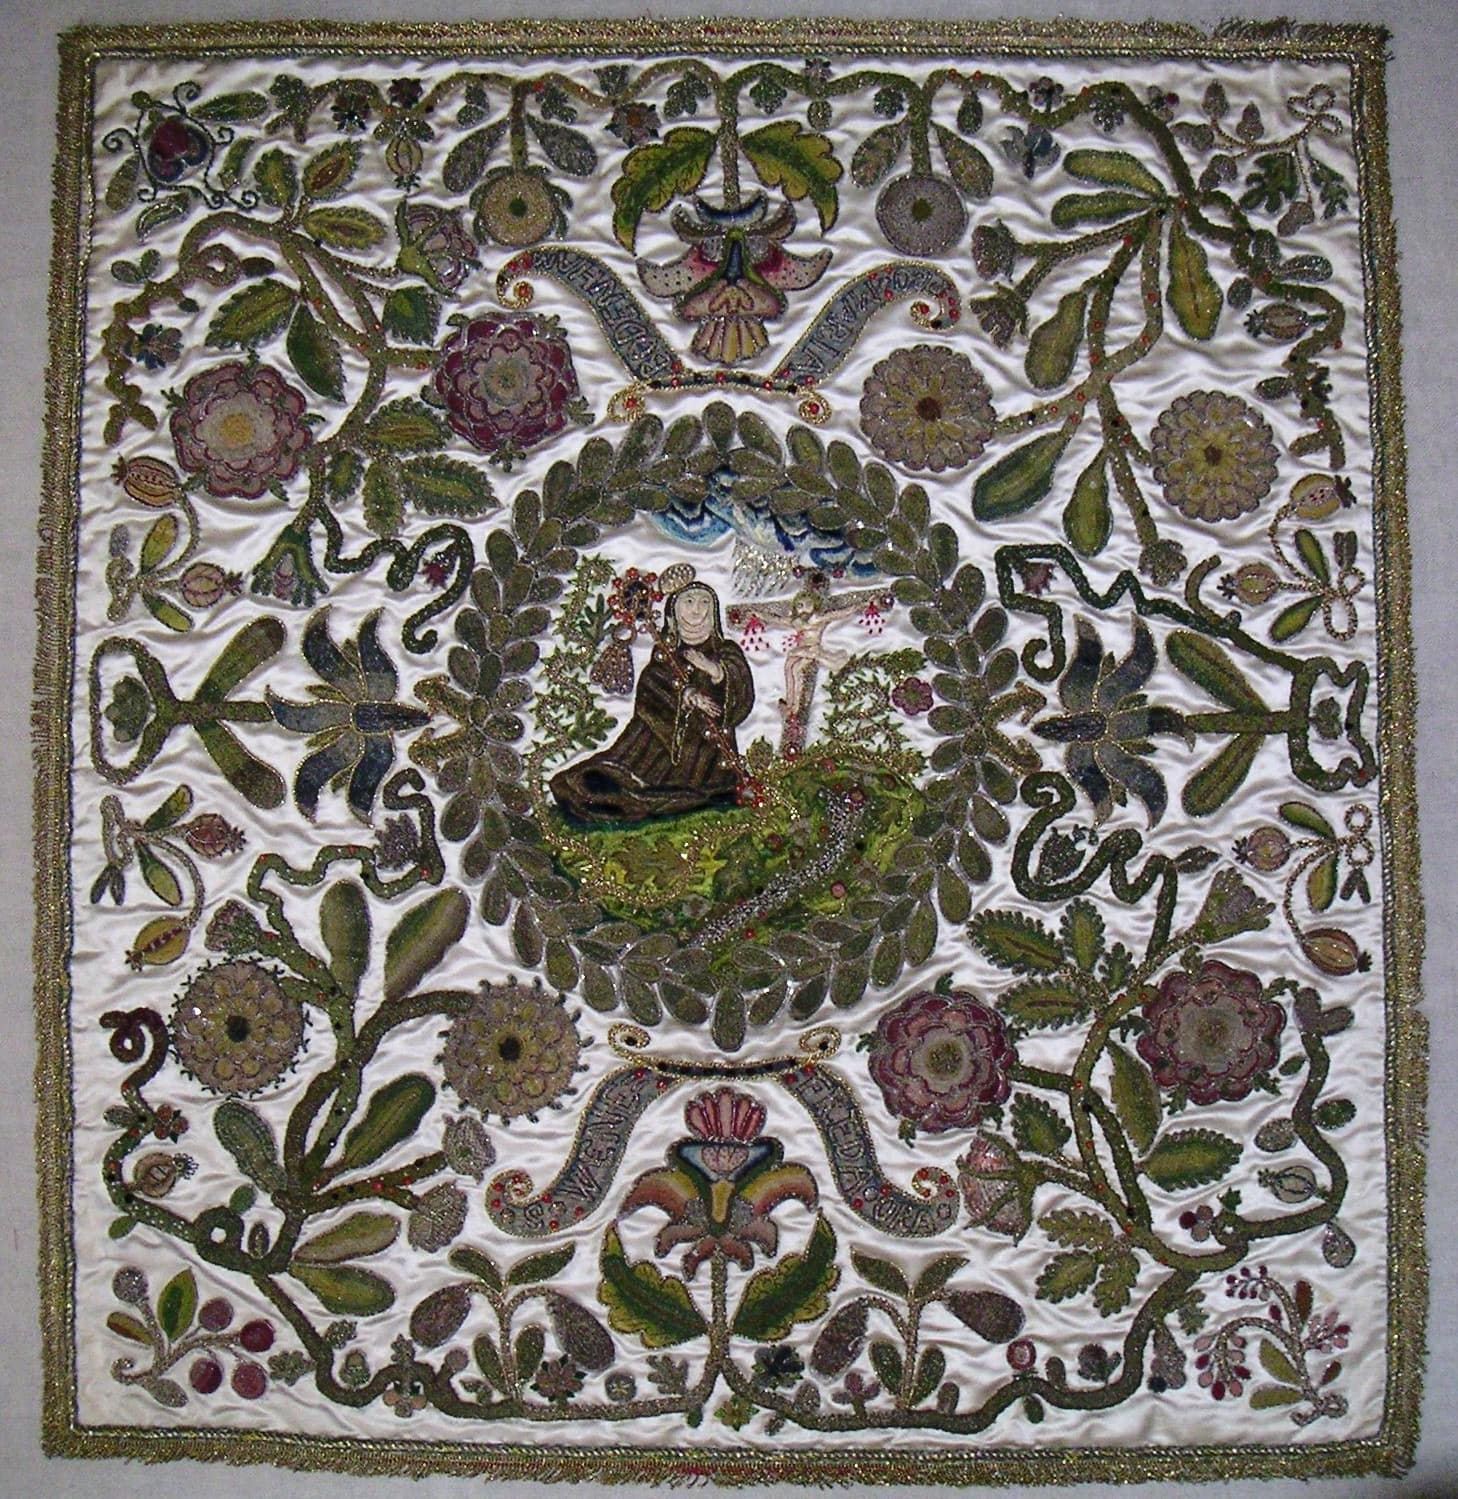 A square of material embroidered with floral motifs. In the centre, inside a circular wreath, is a seated white appearing woman gazing at Christ on the cross